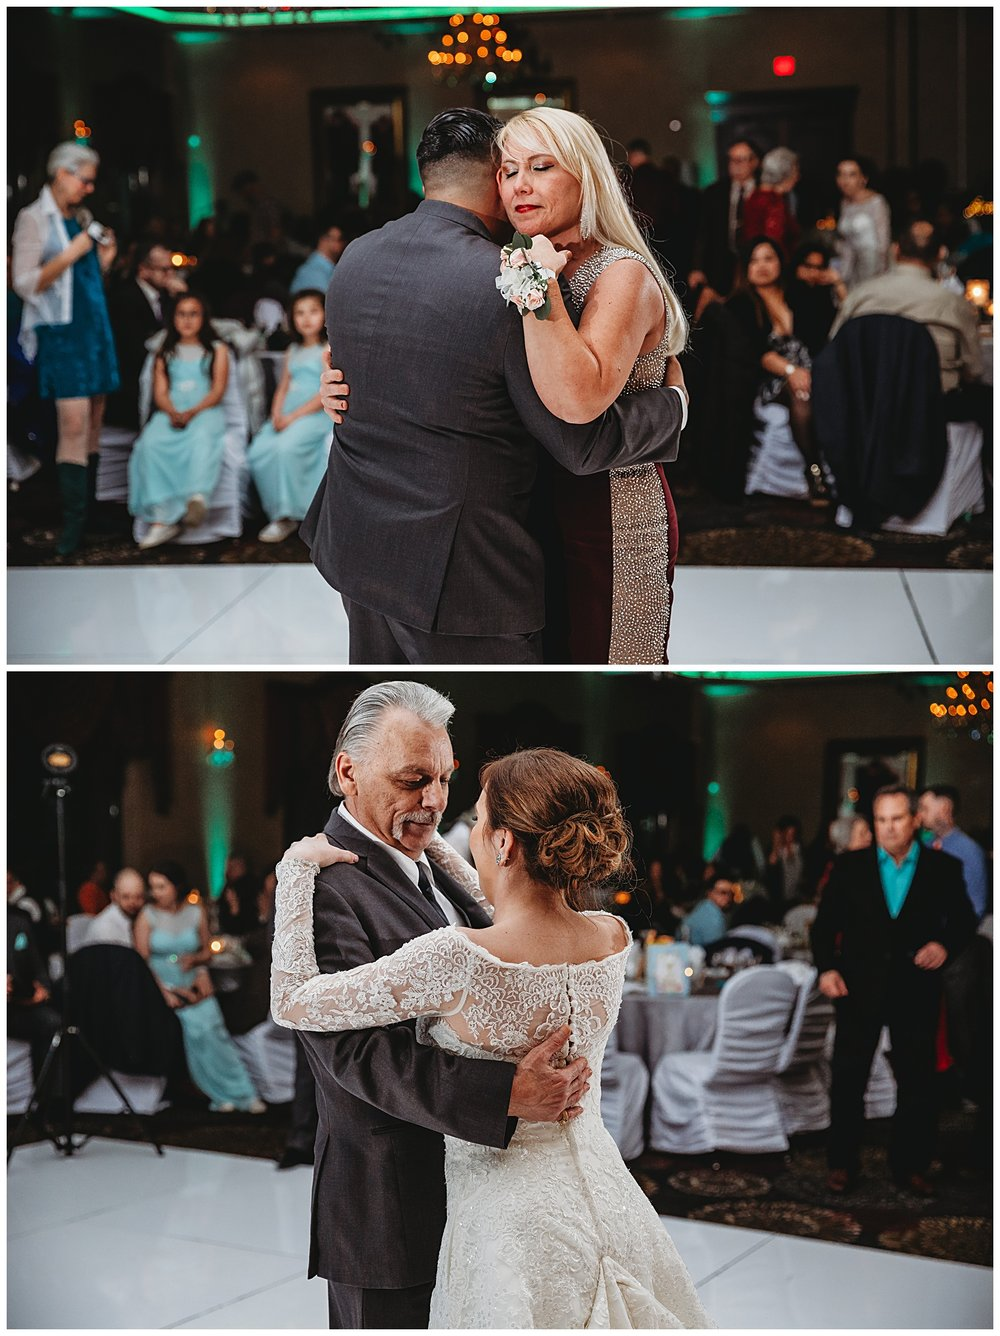 Crystal Gardens Southgate Wedding Catchfly Photography Chelsea + Jesse_0381.jpg